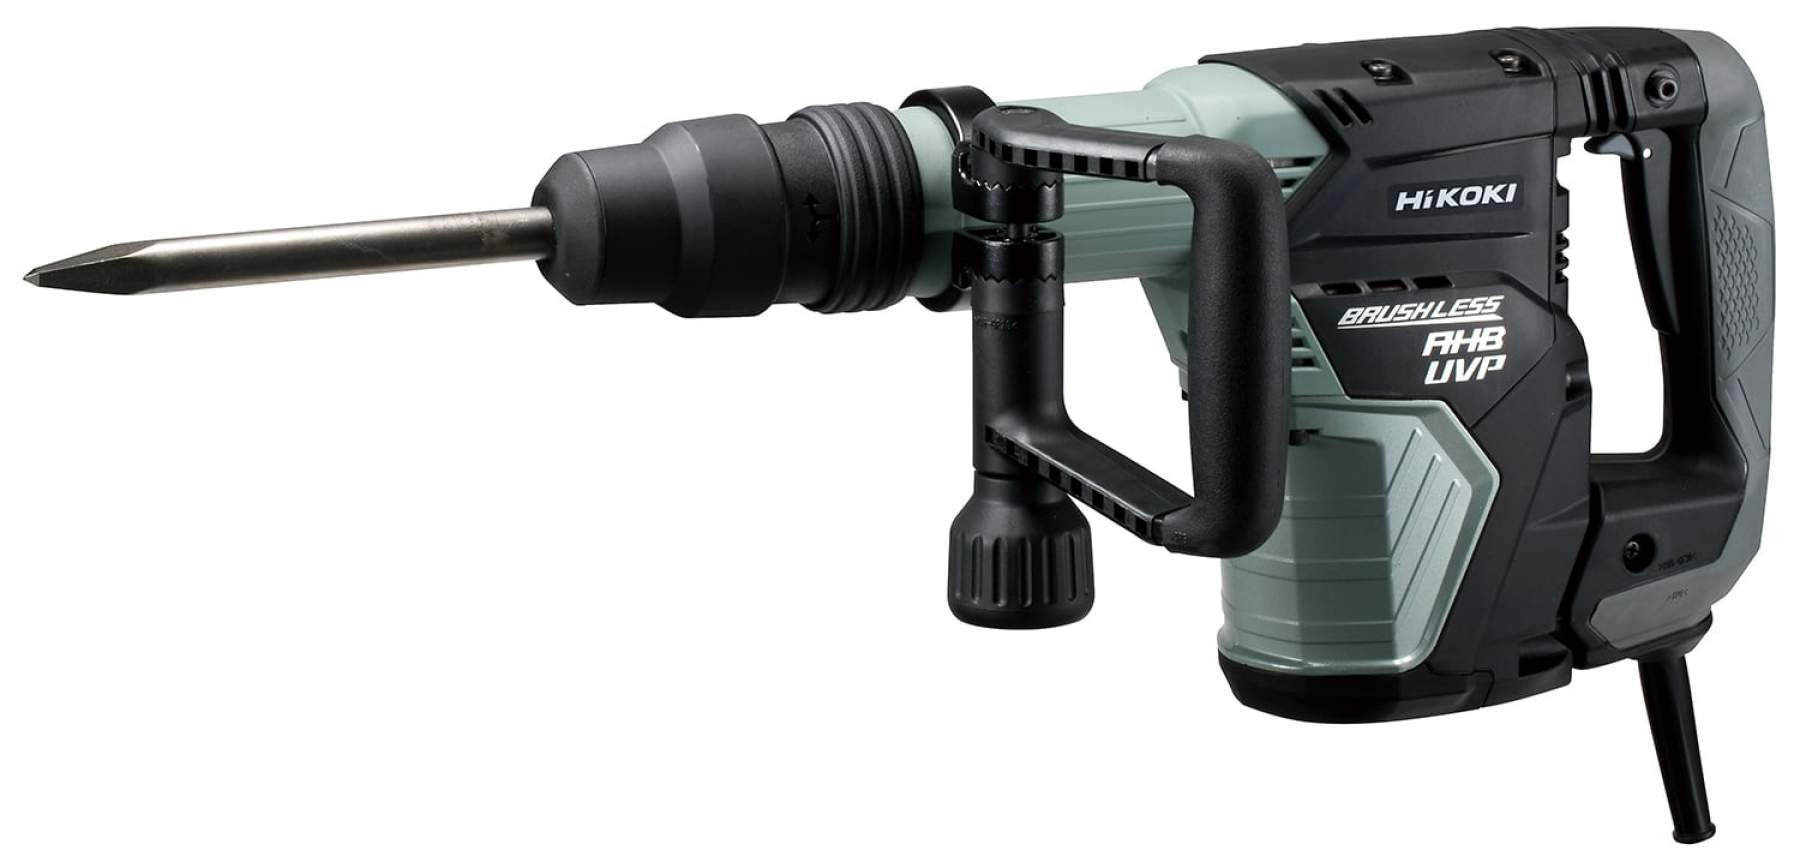 SDS-Max Demolition Hammer with Brushless Motor